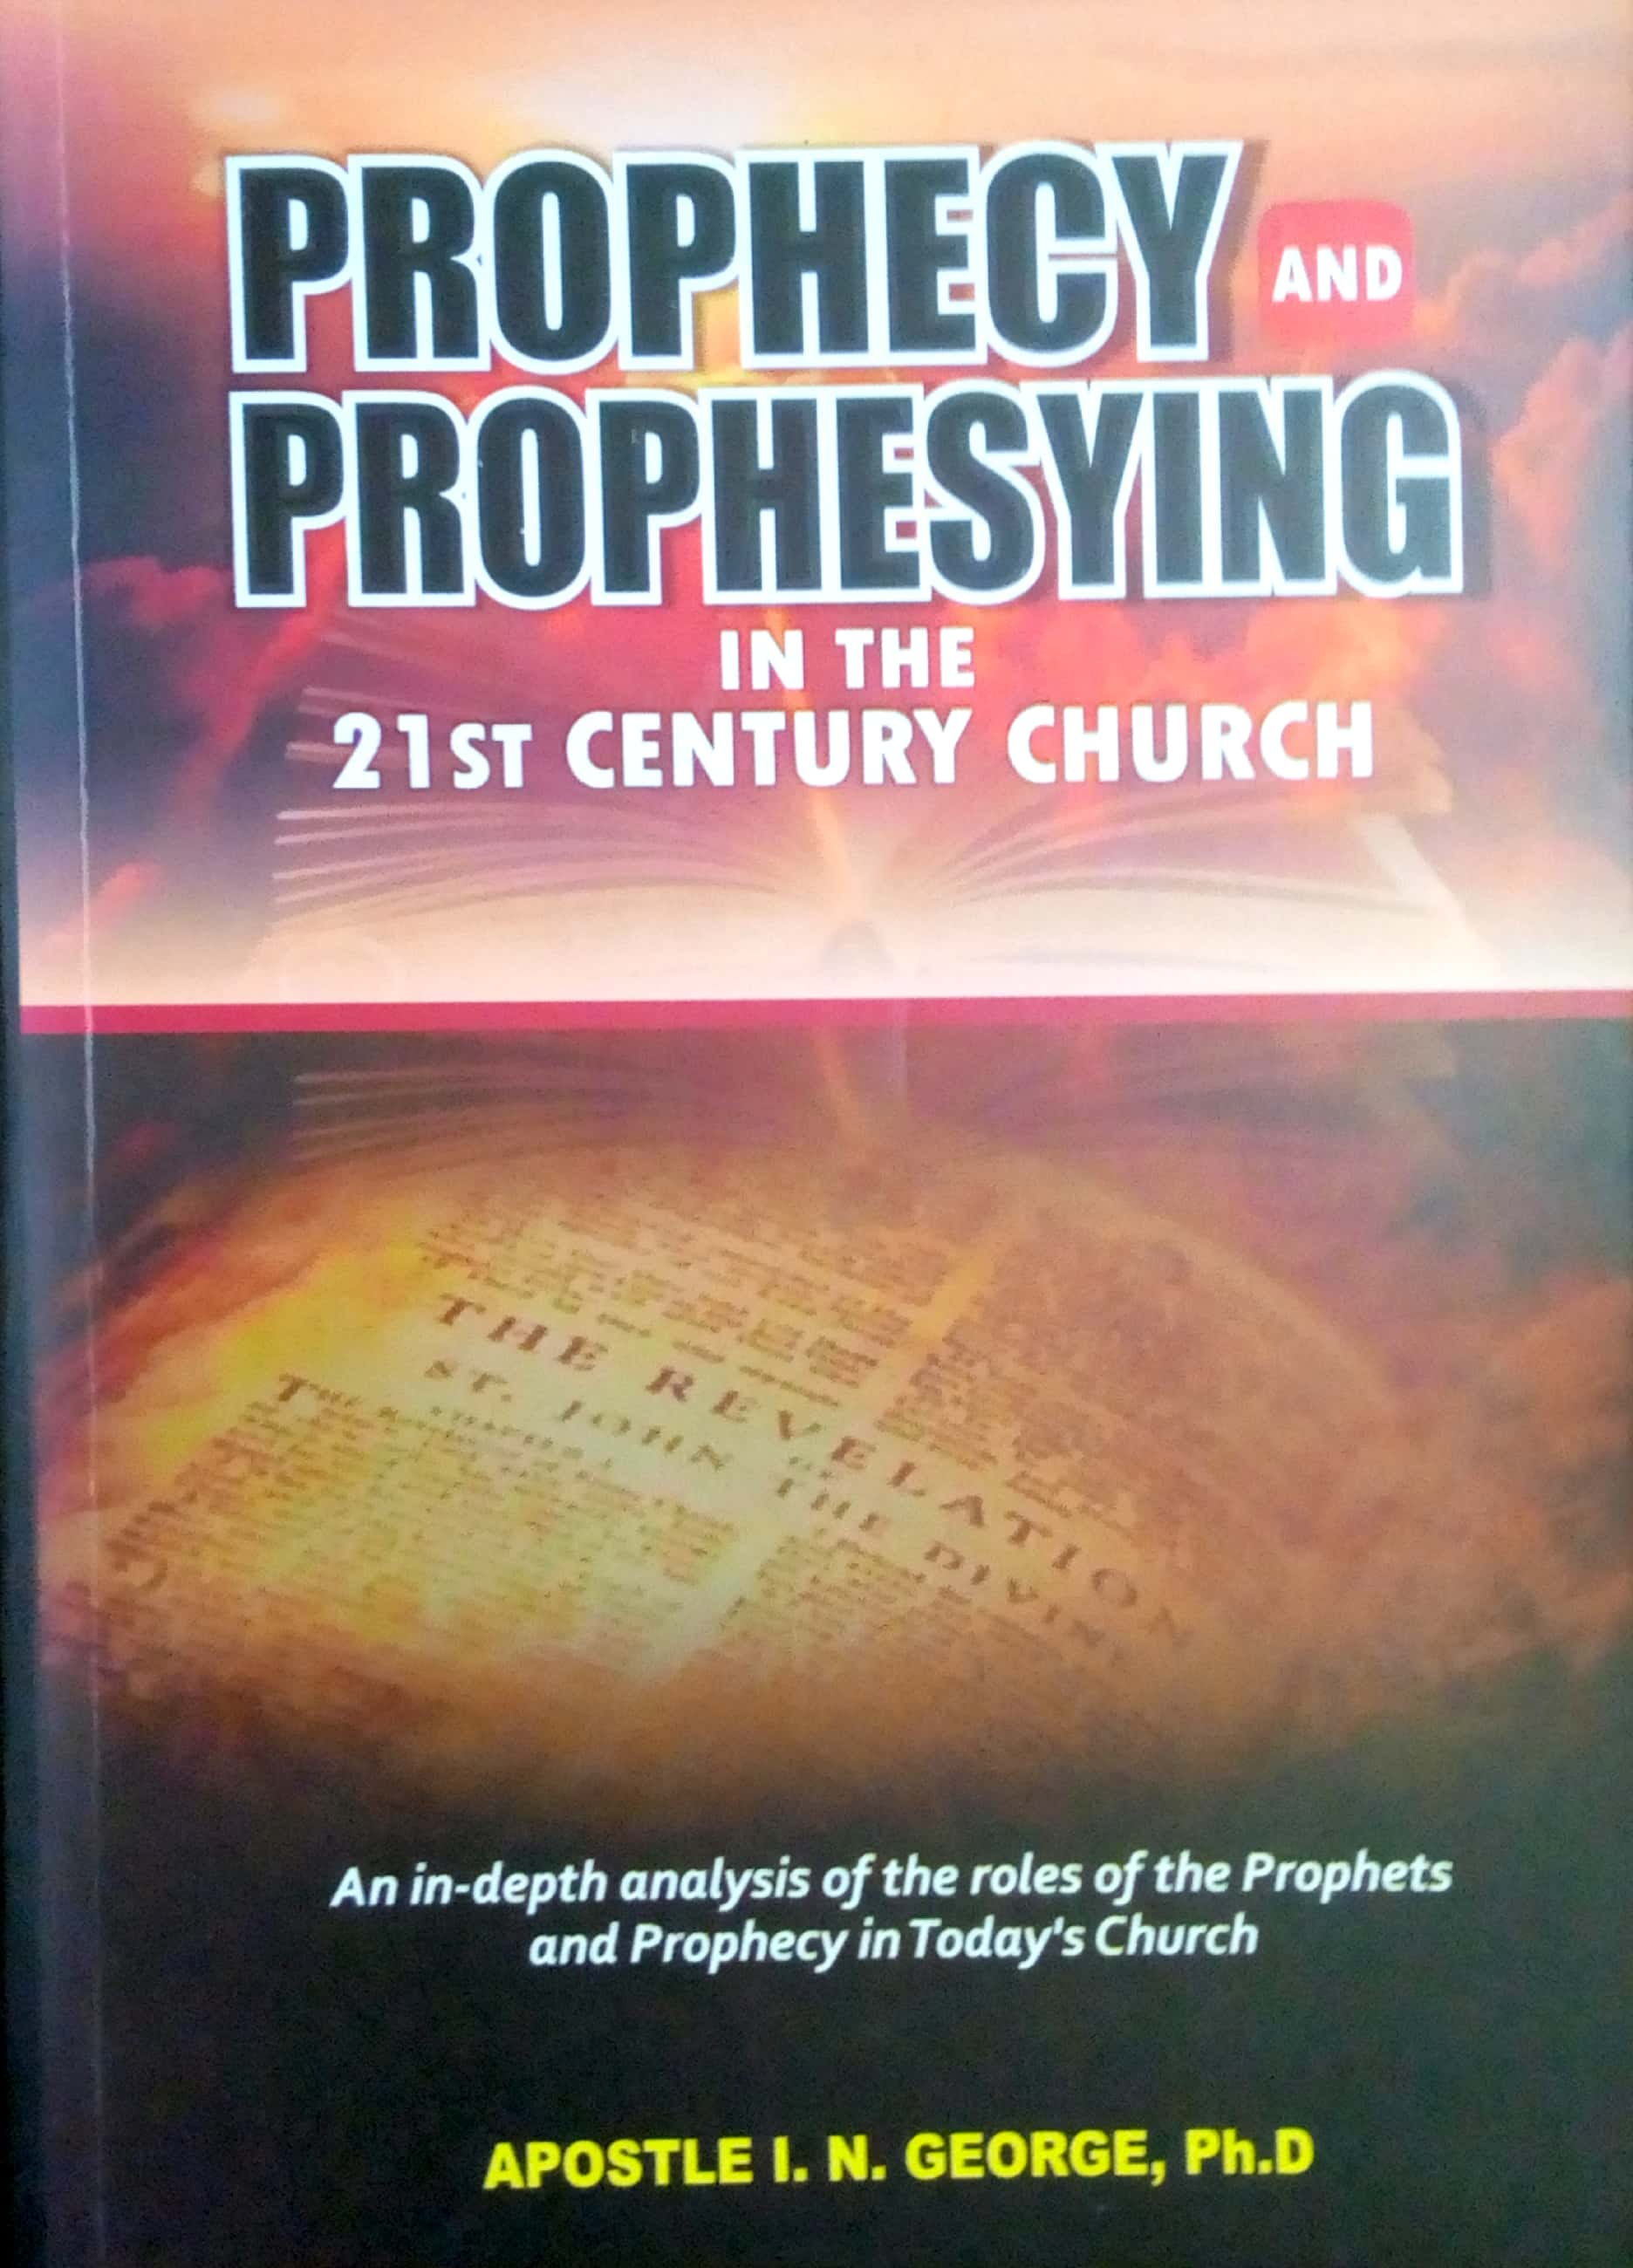 the roles of prophecies and prophets